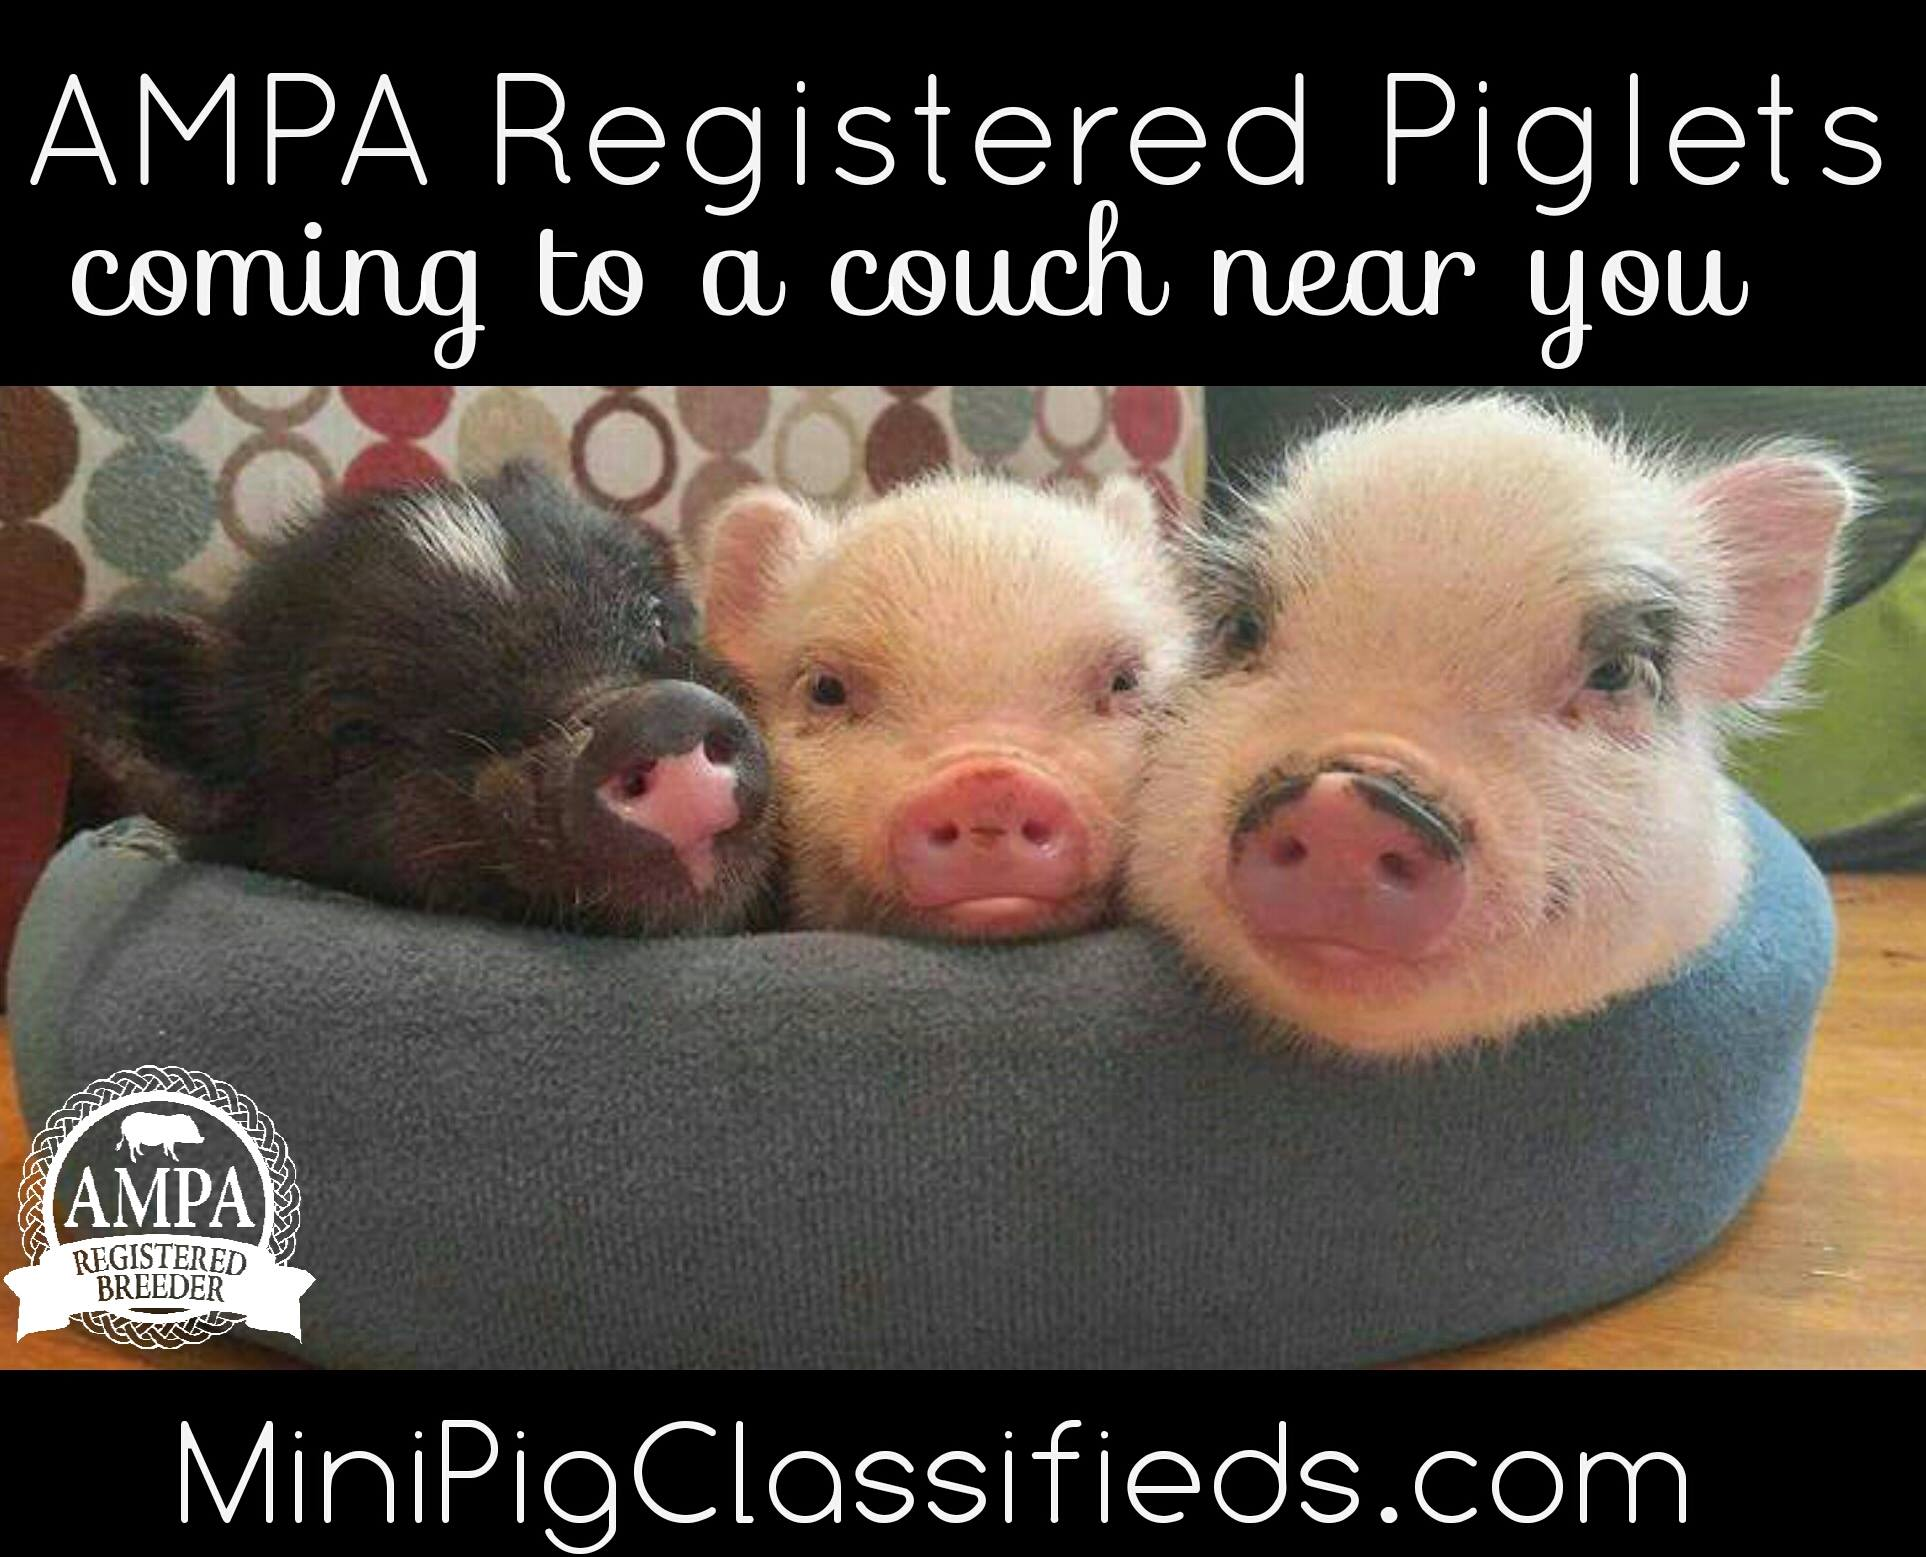 registered piglets, available piglets